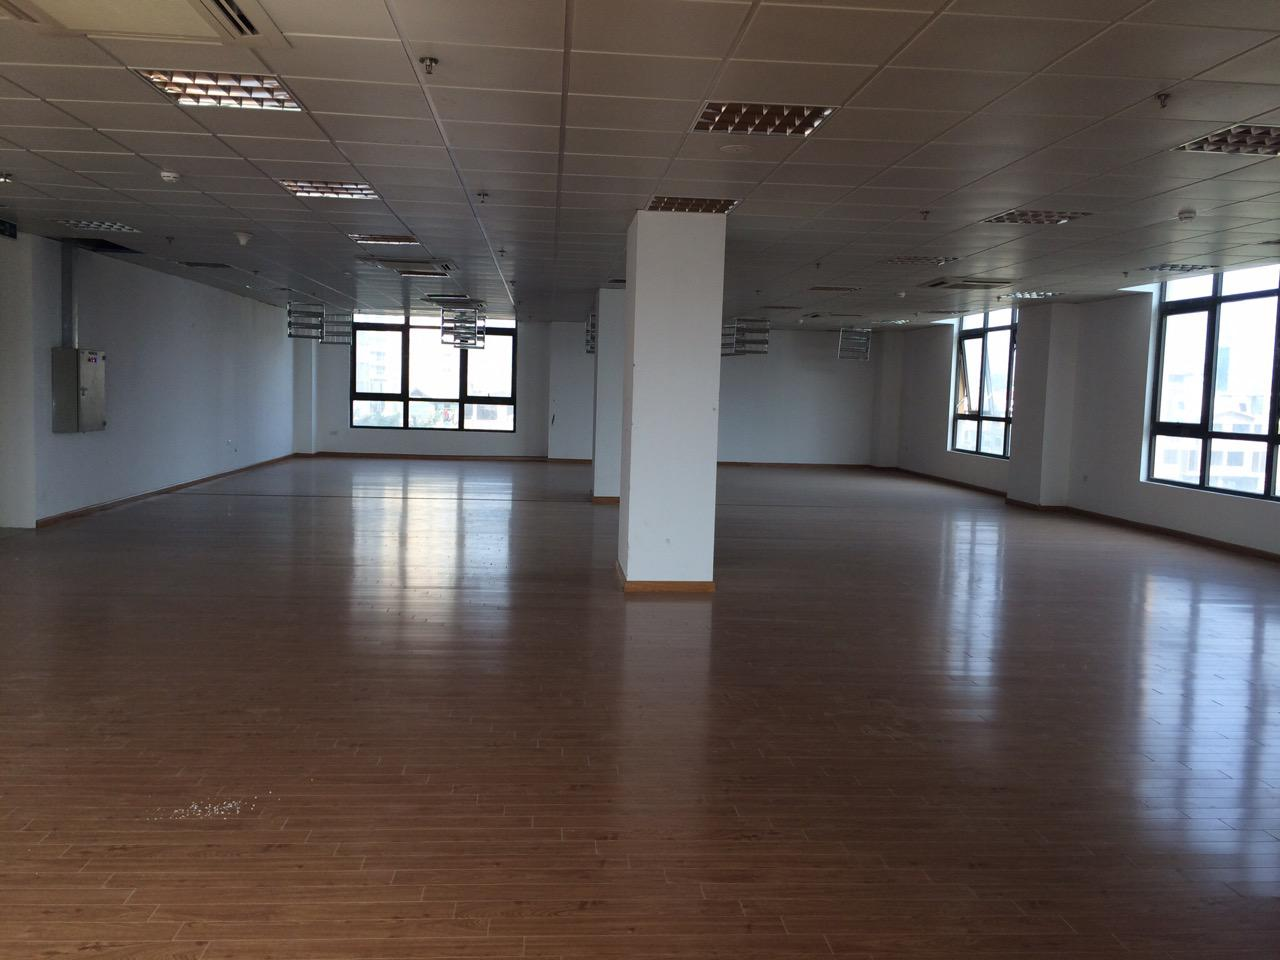 Eurowindow offices for rent in Cau Giay district, Hanoi